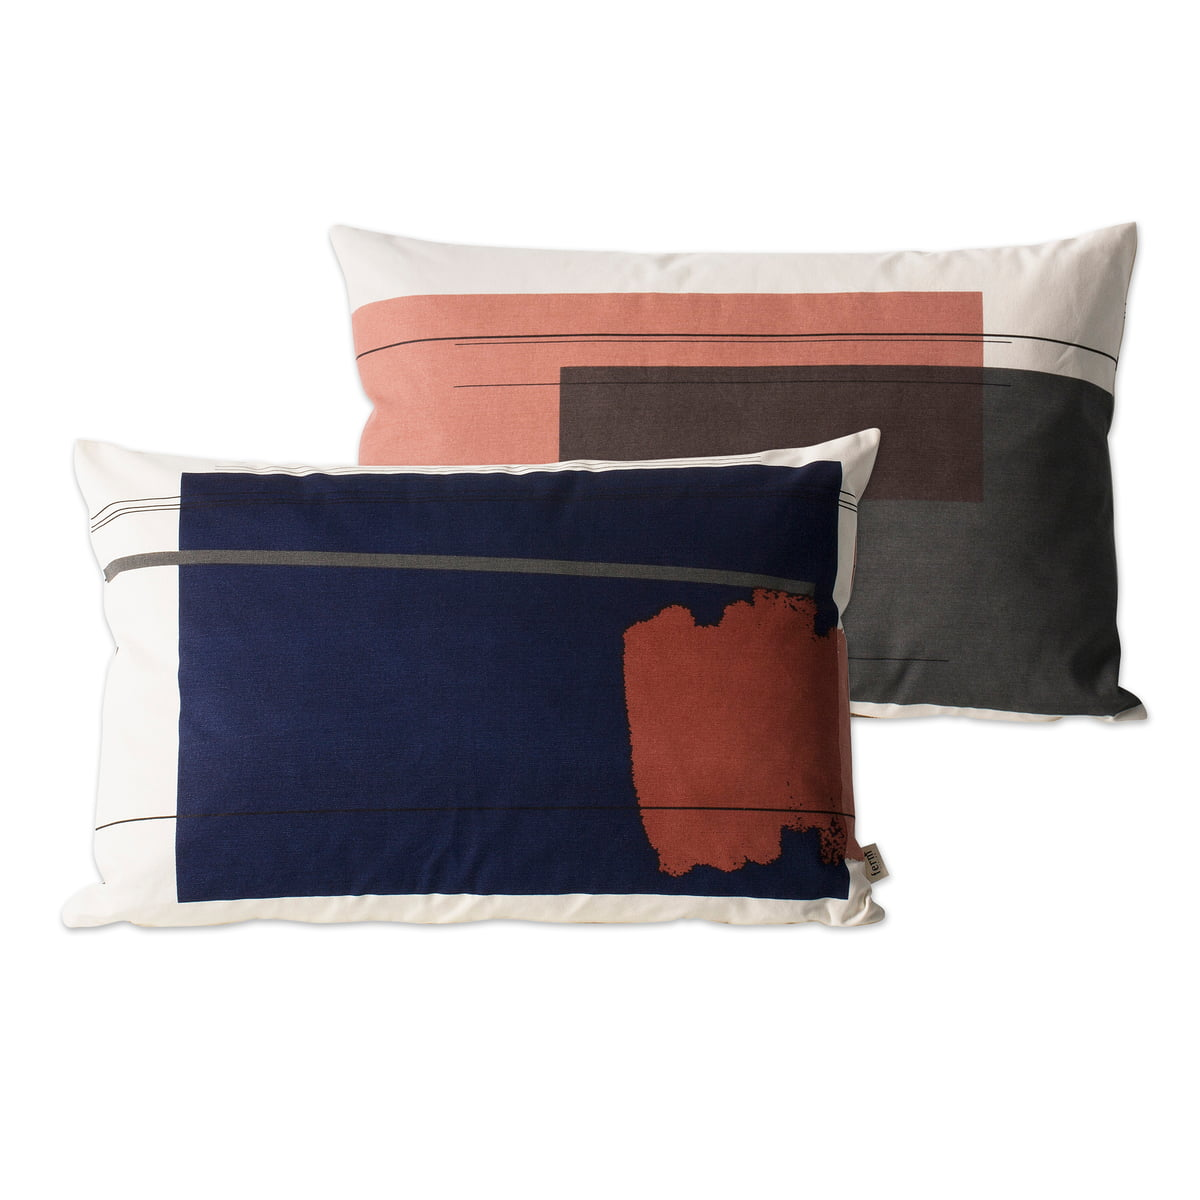 Colour Block Cushion Large 1 From Ferm Living